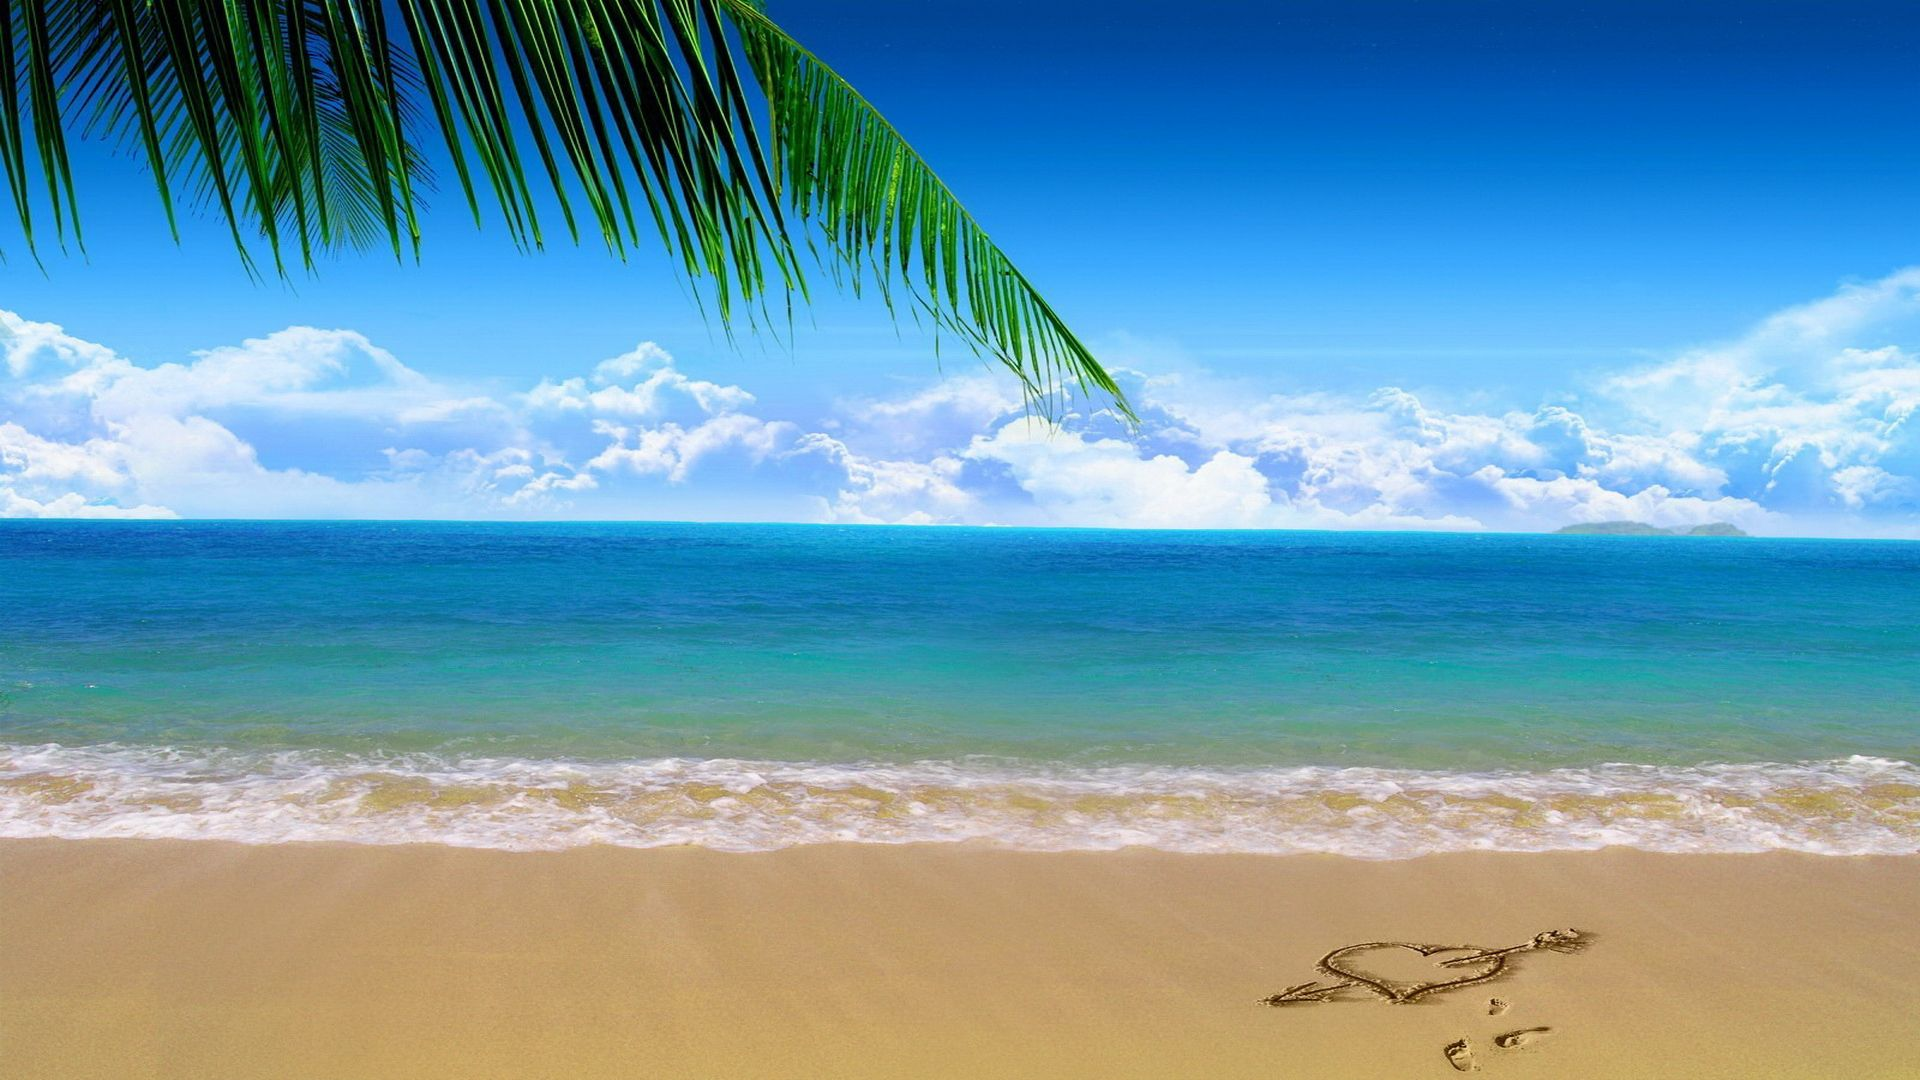 1920x1080 backgrounds clipart graphic library download Beach Backgrounds Clipart | Beach Wallpapers | Beach wallpaper ... graphic library download